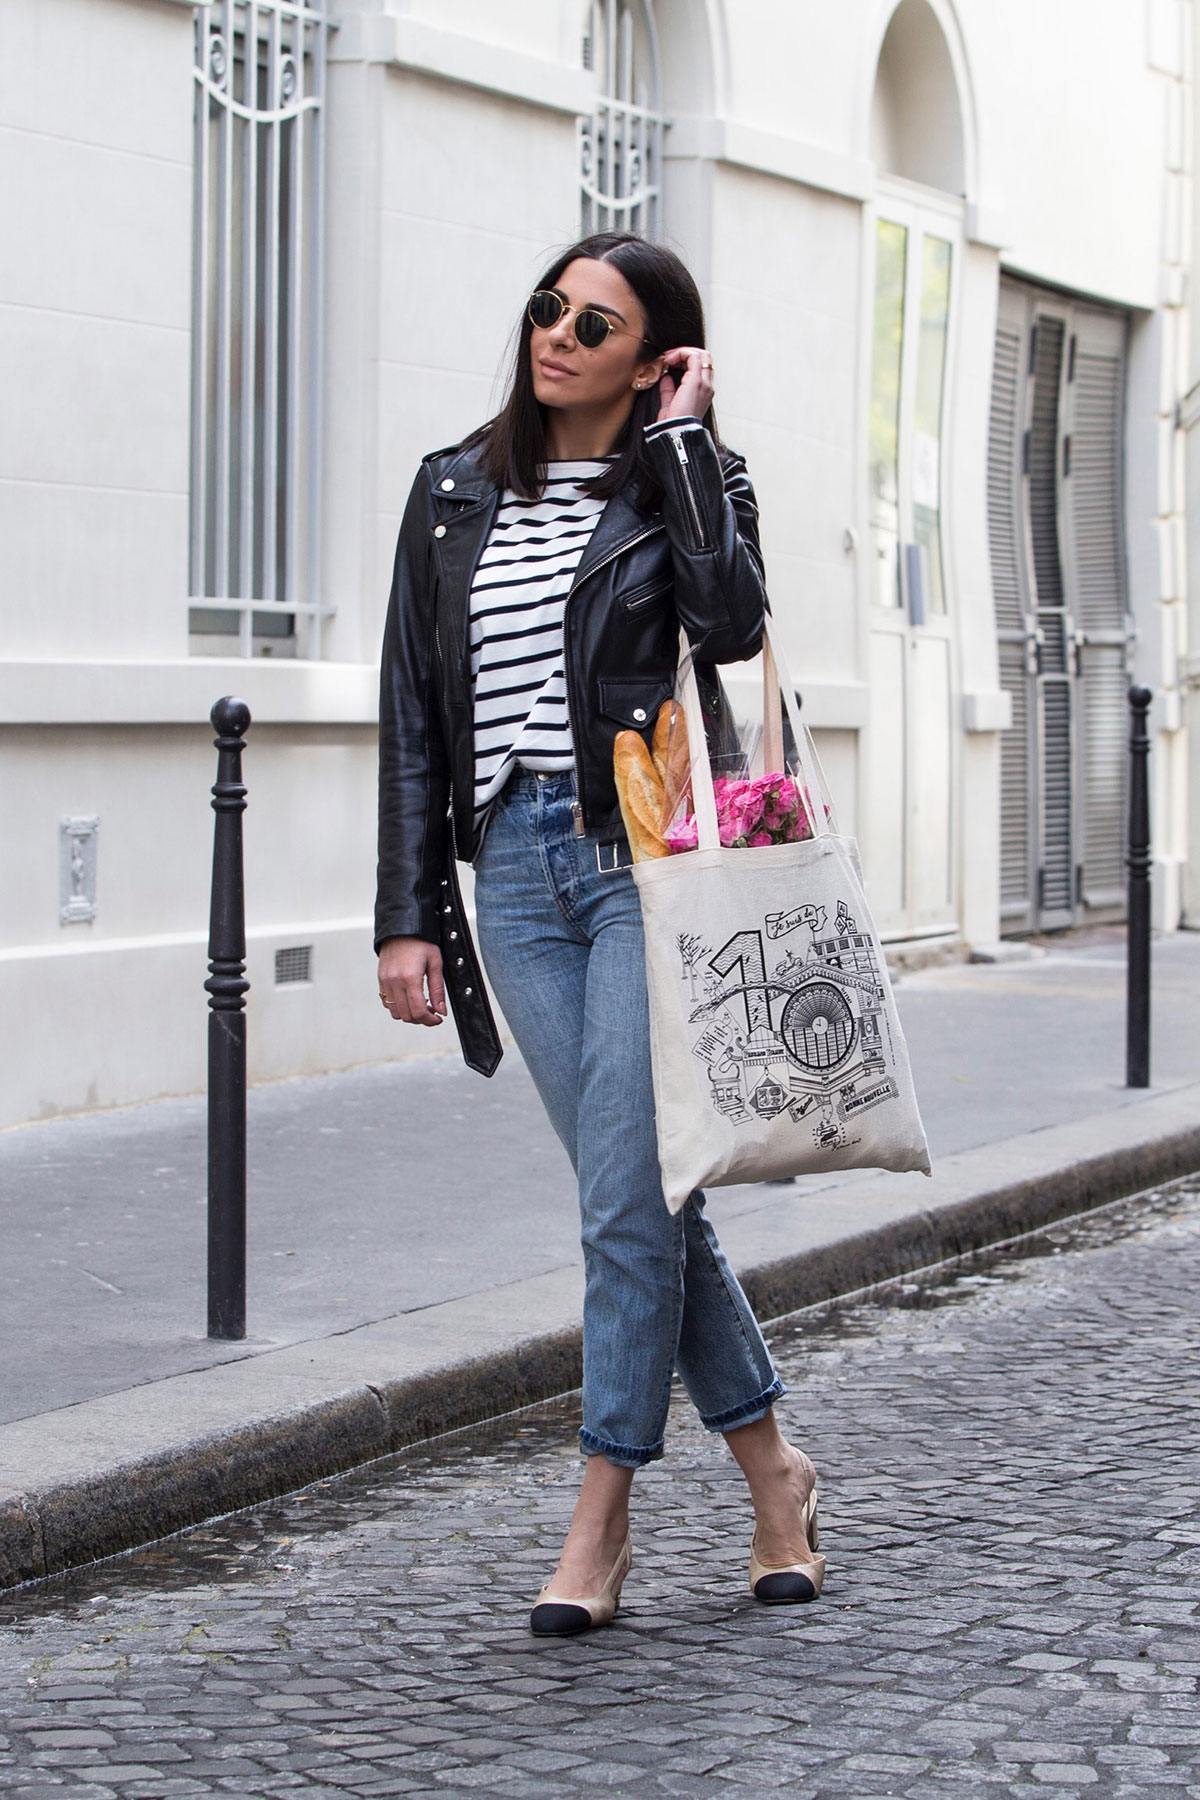 Breton Stripe Top & Jeans by Stella Asteria | Fashion & Lifestyle Blogger